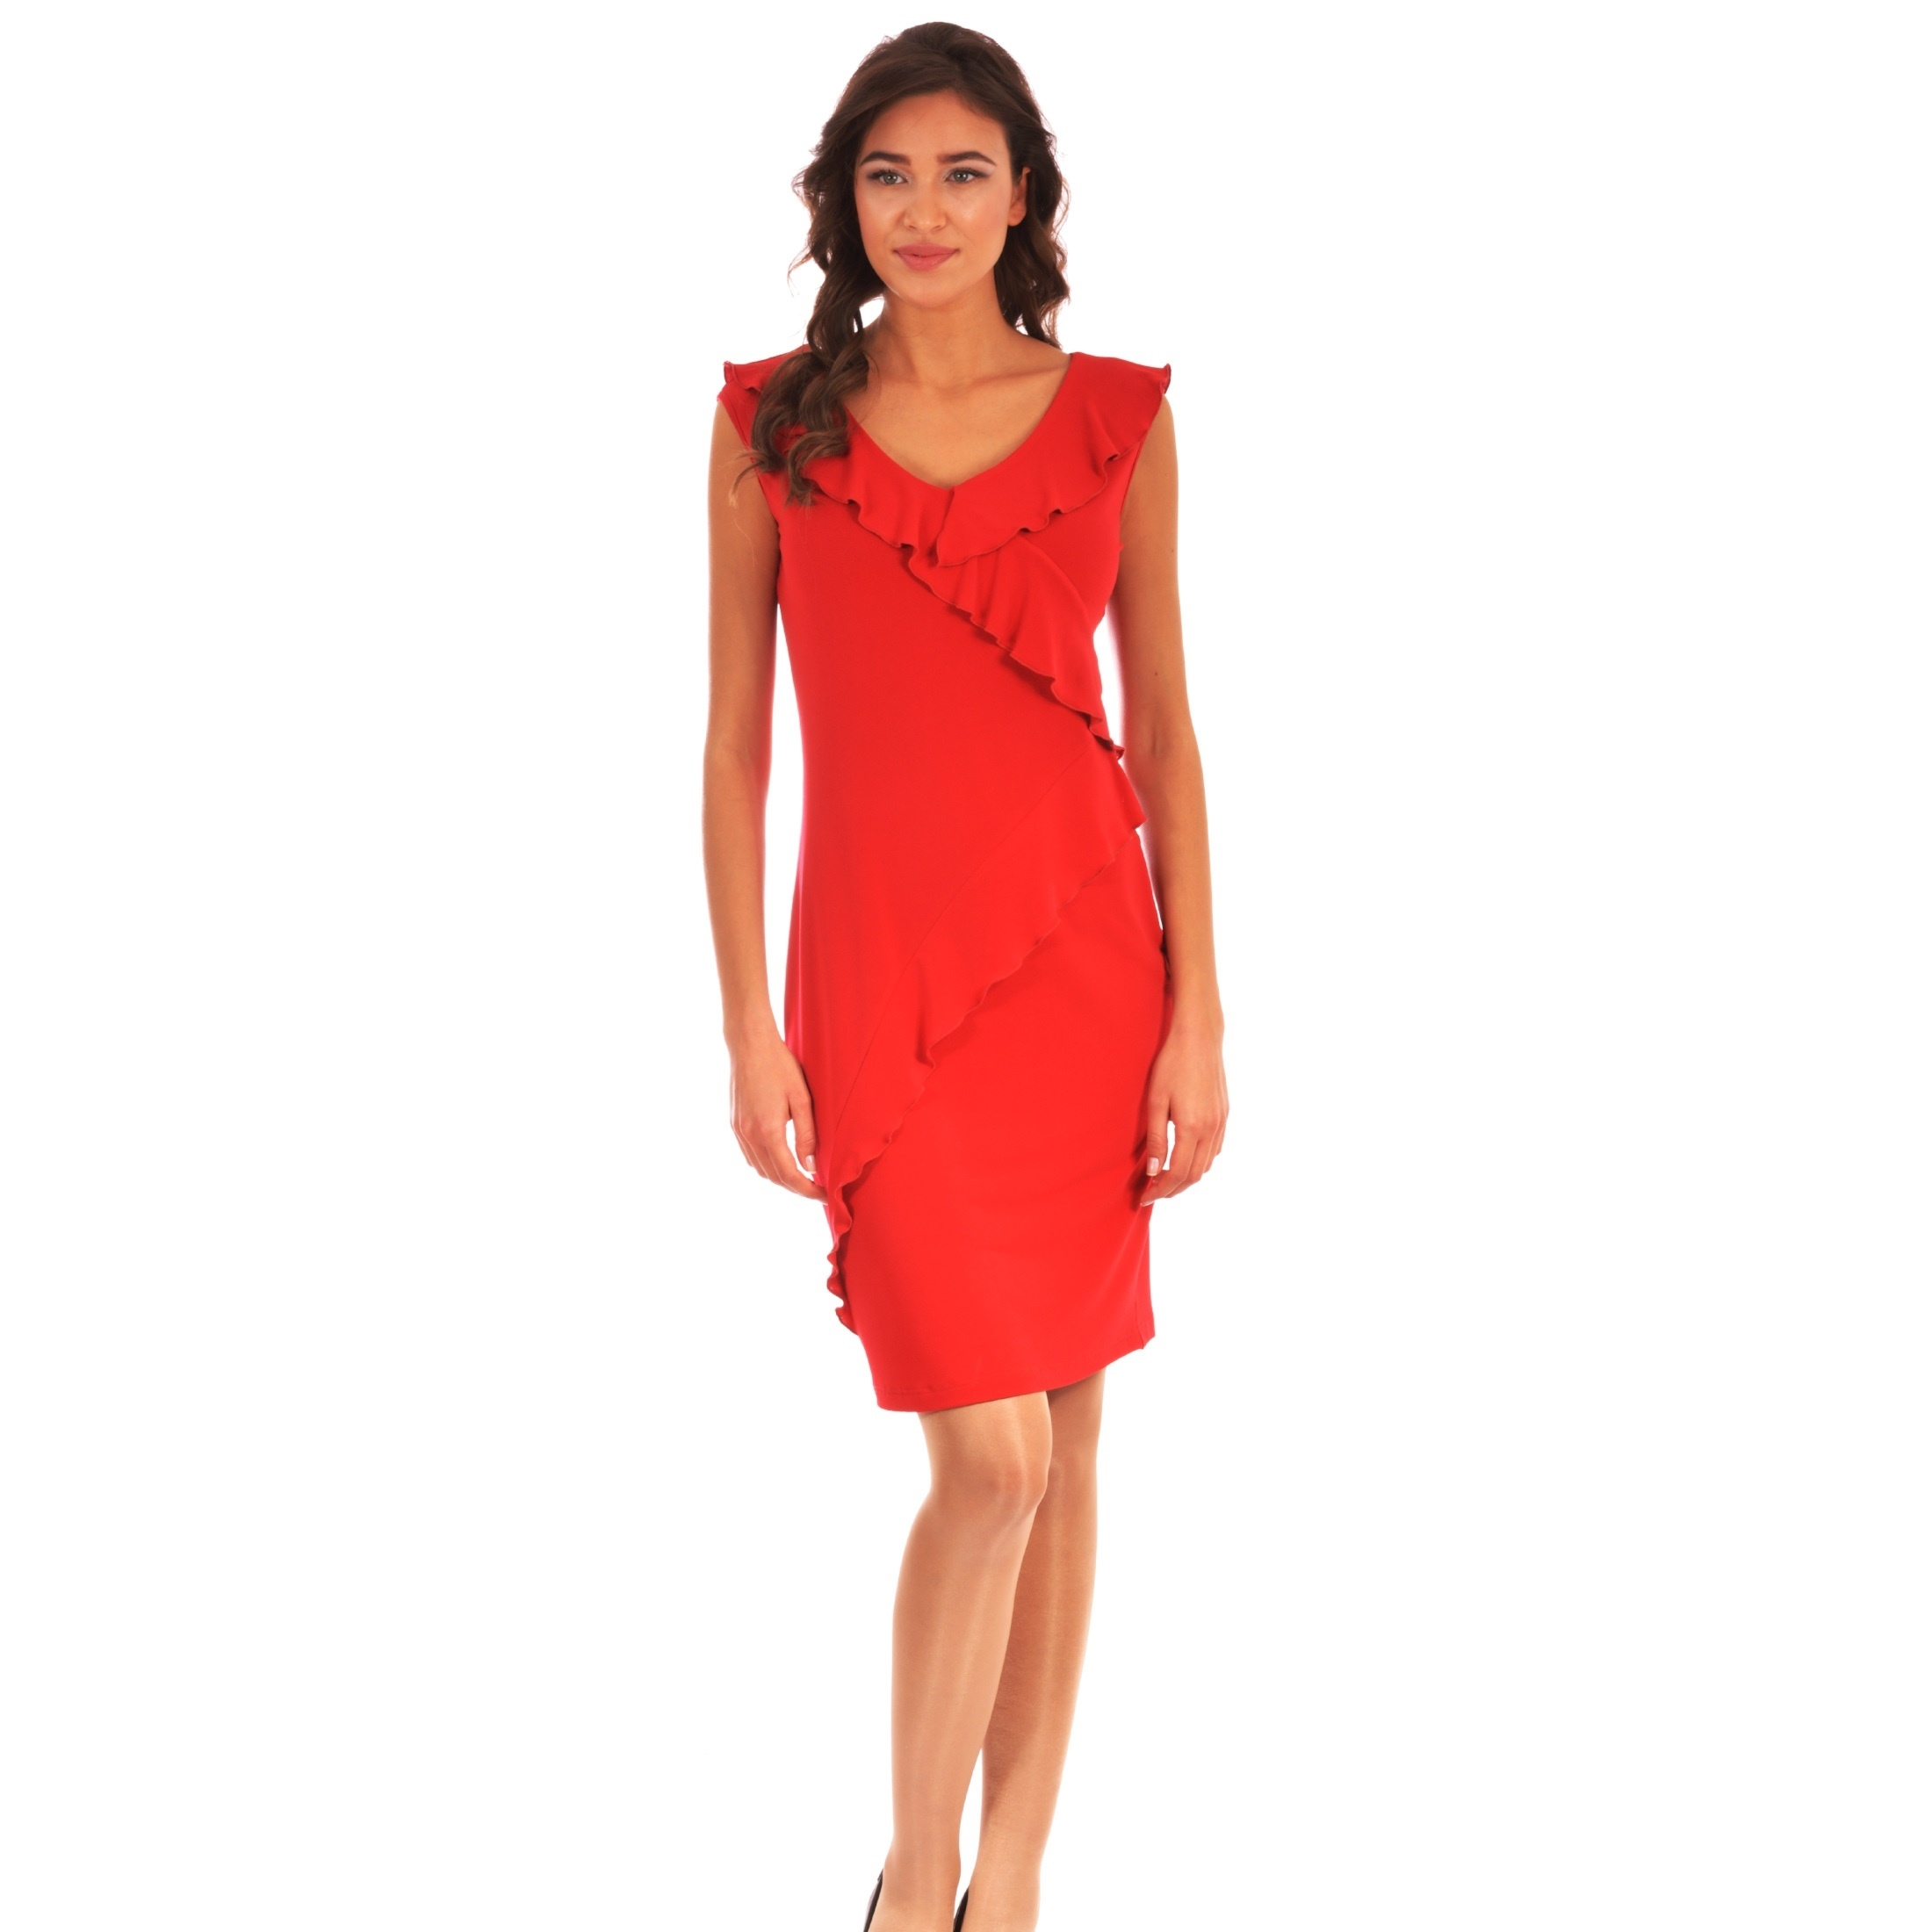 red women's dress lady m, crvena lady m haljina